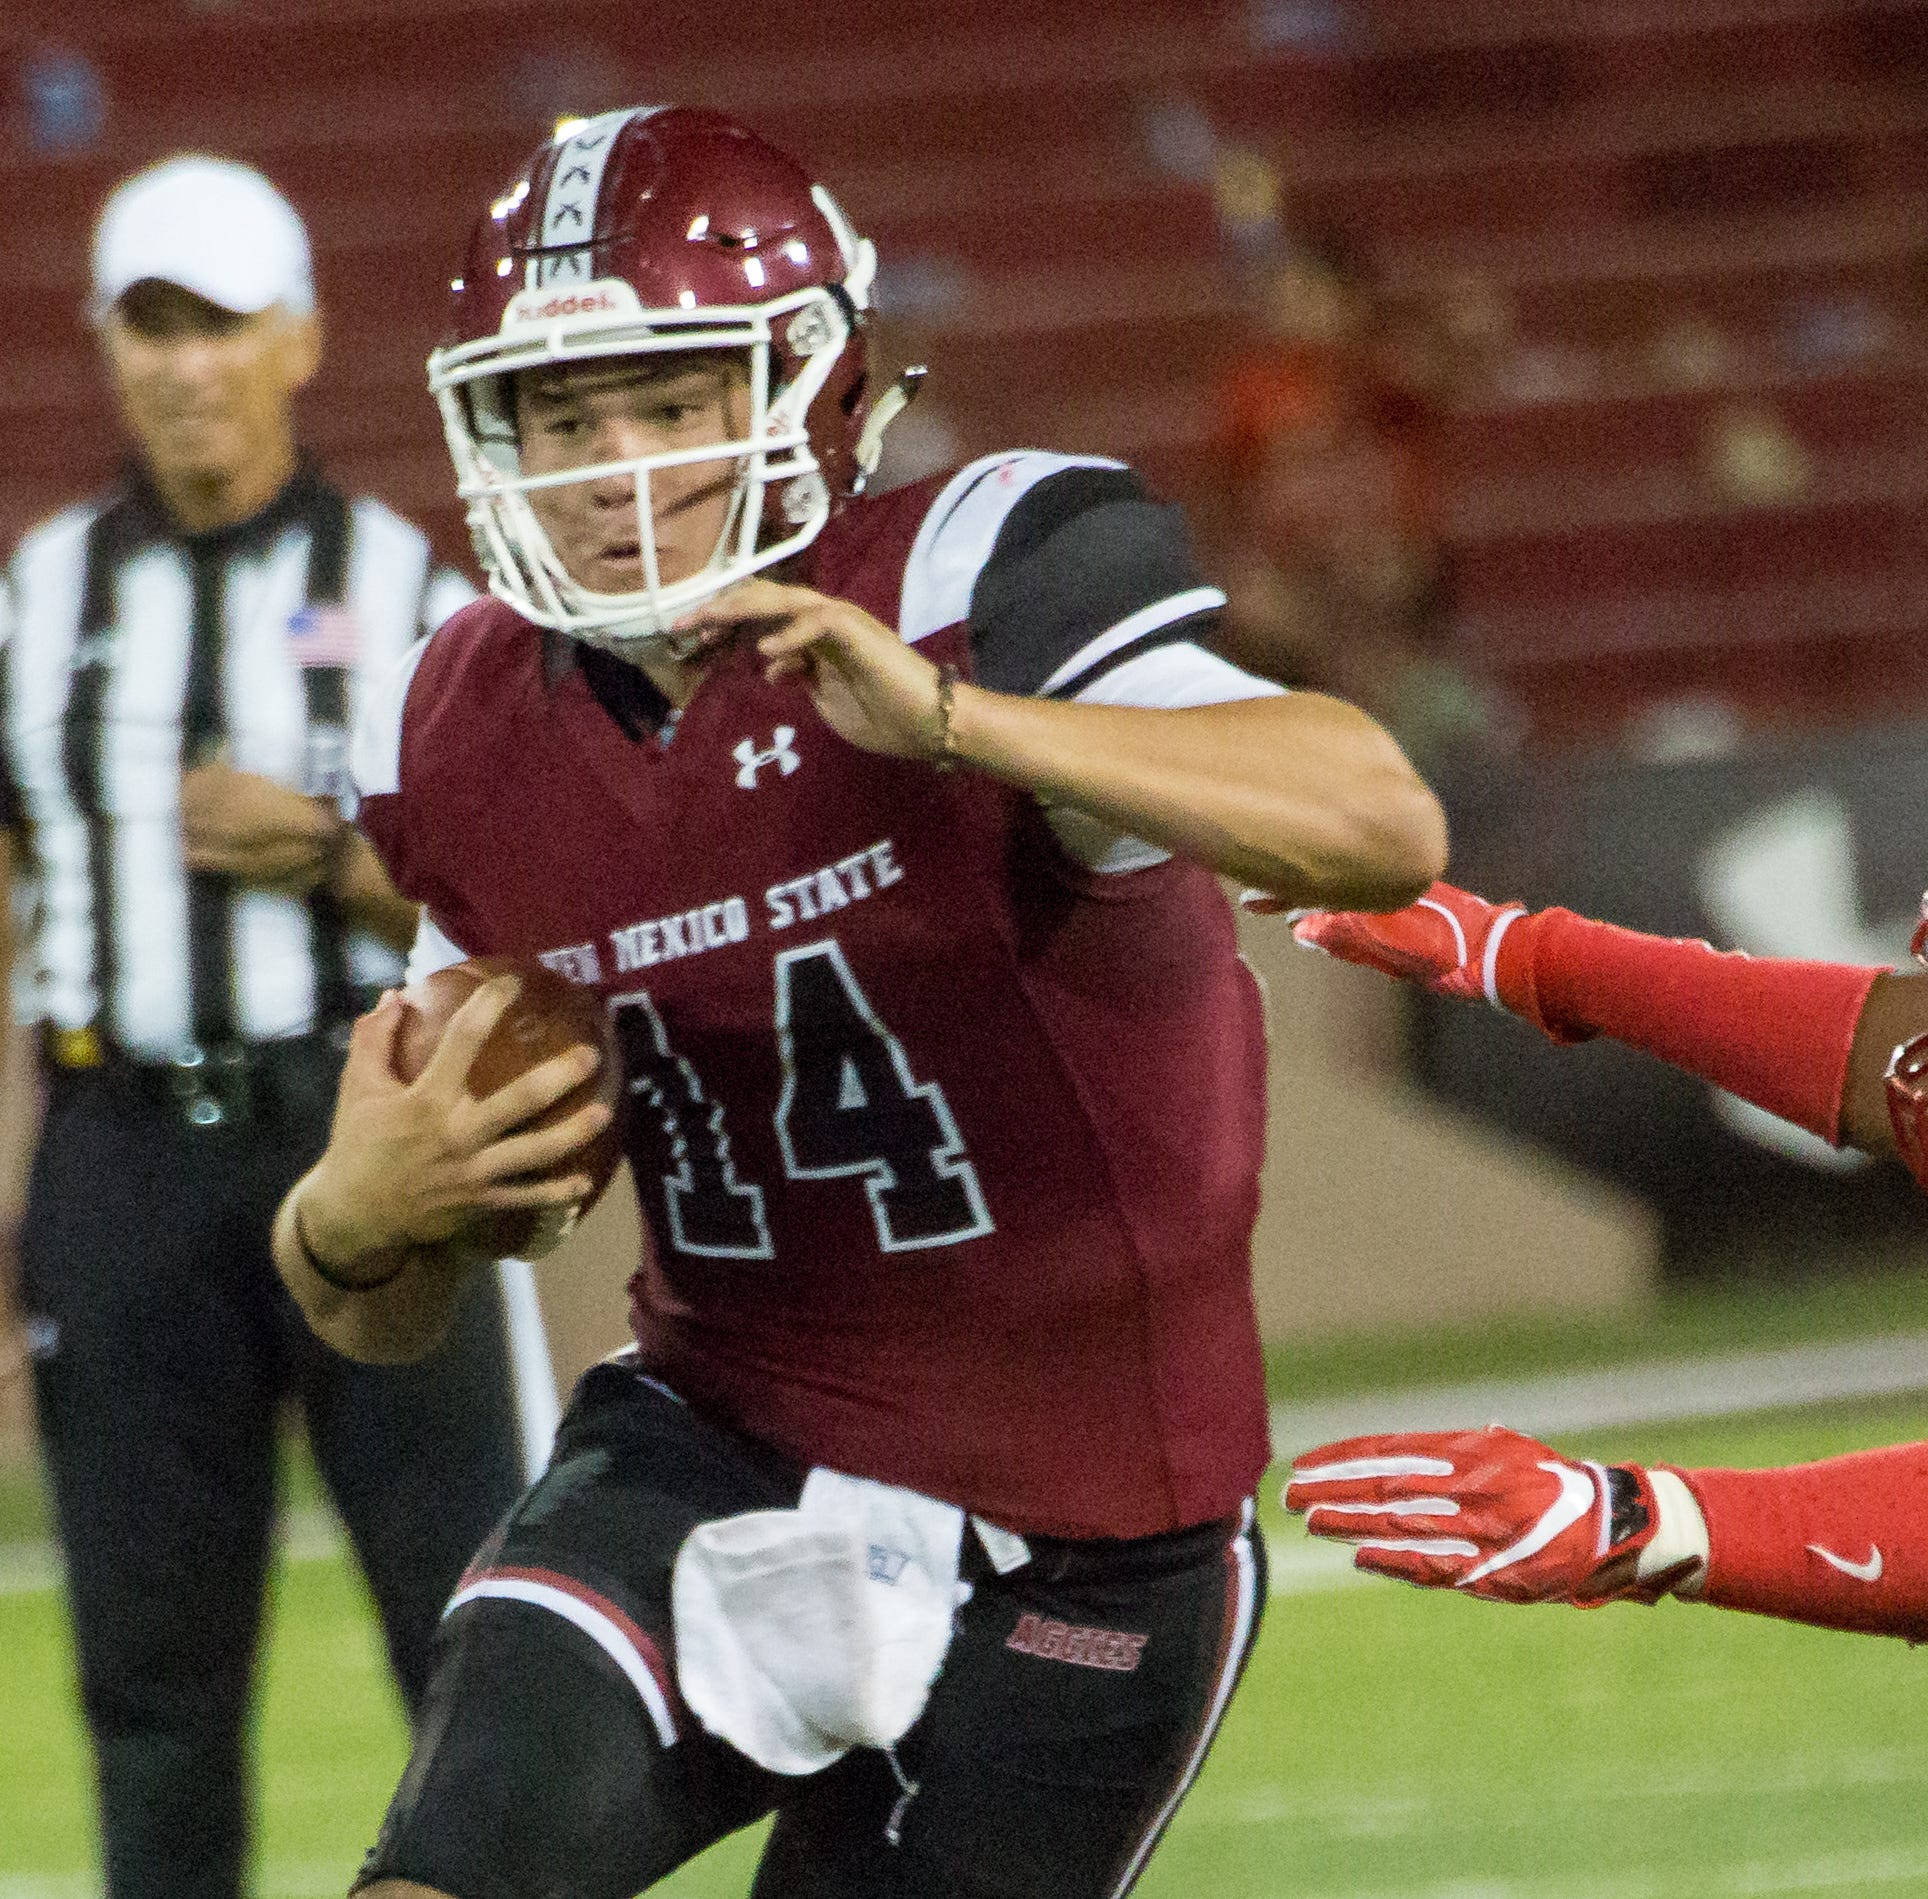 New Mexico State players confident in starting quarterback Josh Adkins